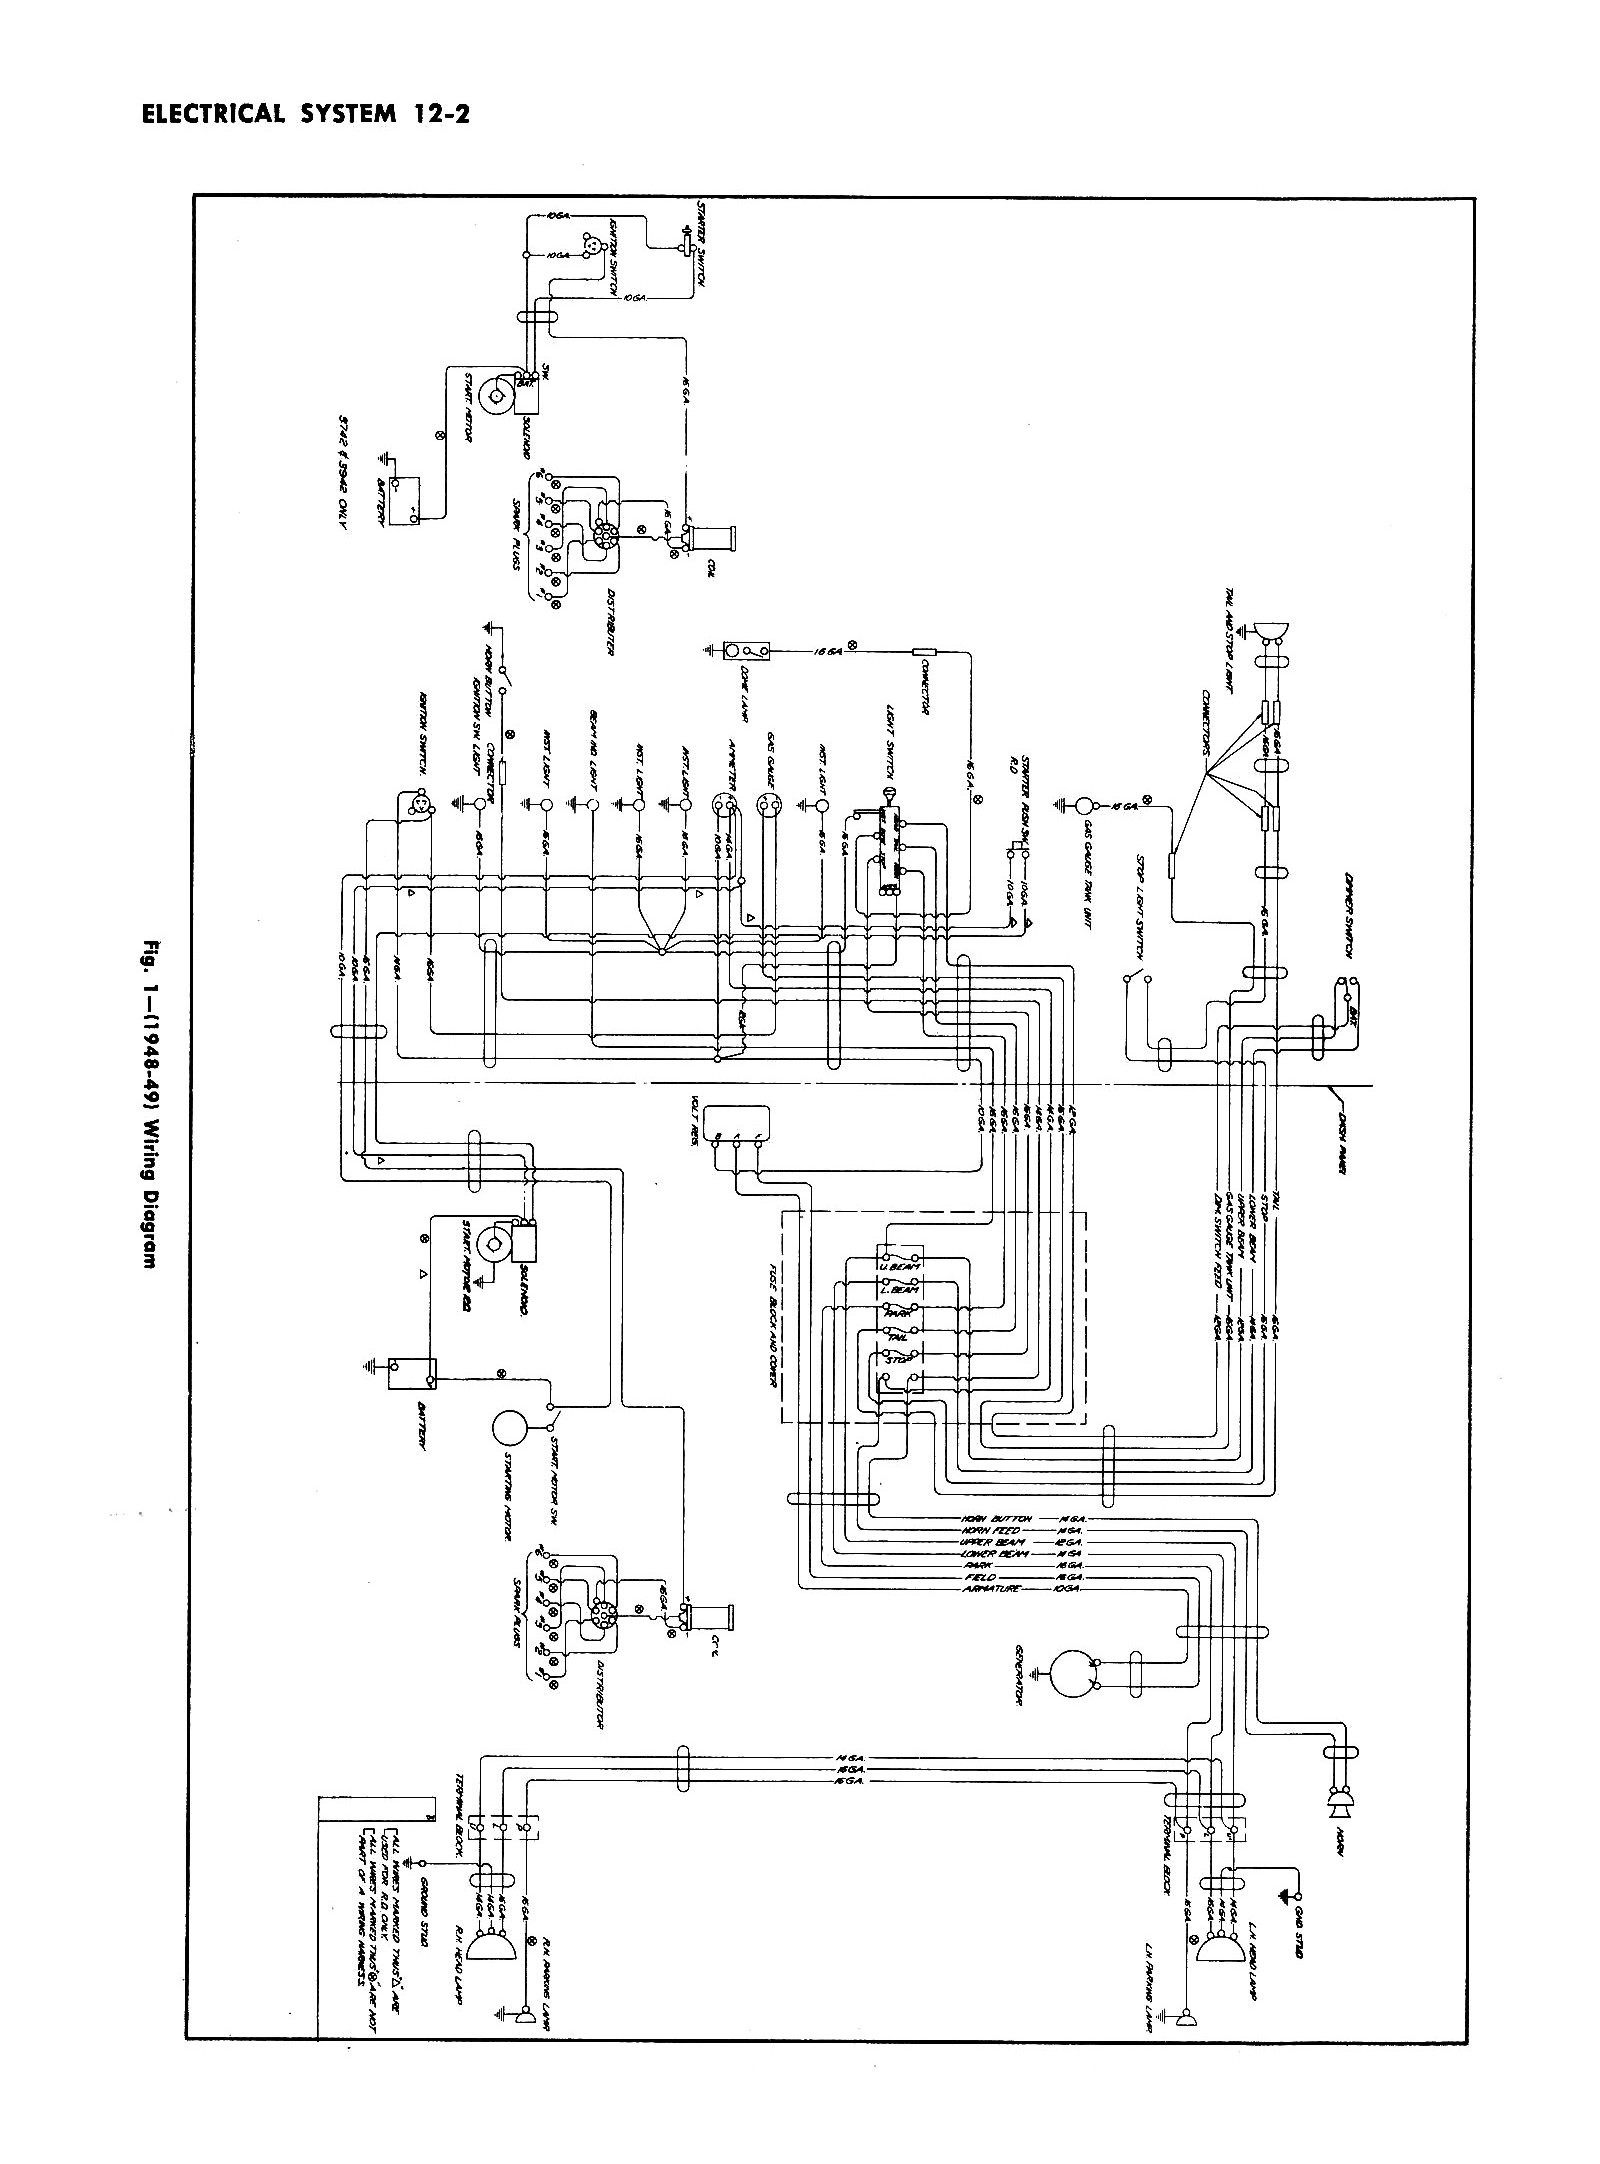 1948 chevy truck wiring diagram data wiring diagram update 2002 gmc truck wiring diagrams chevy wiring diagrams 1957 chevrolet wiring diagram 1948 chevy truck wiring diagram